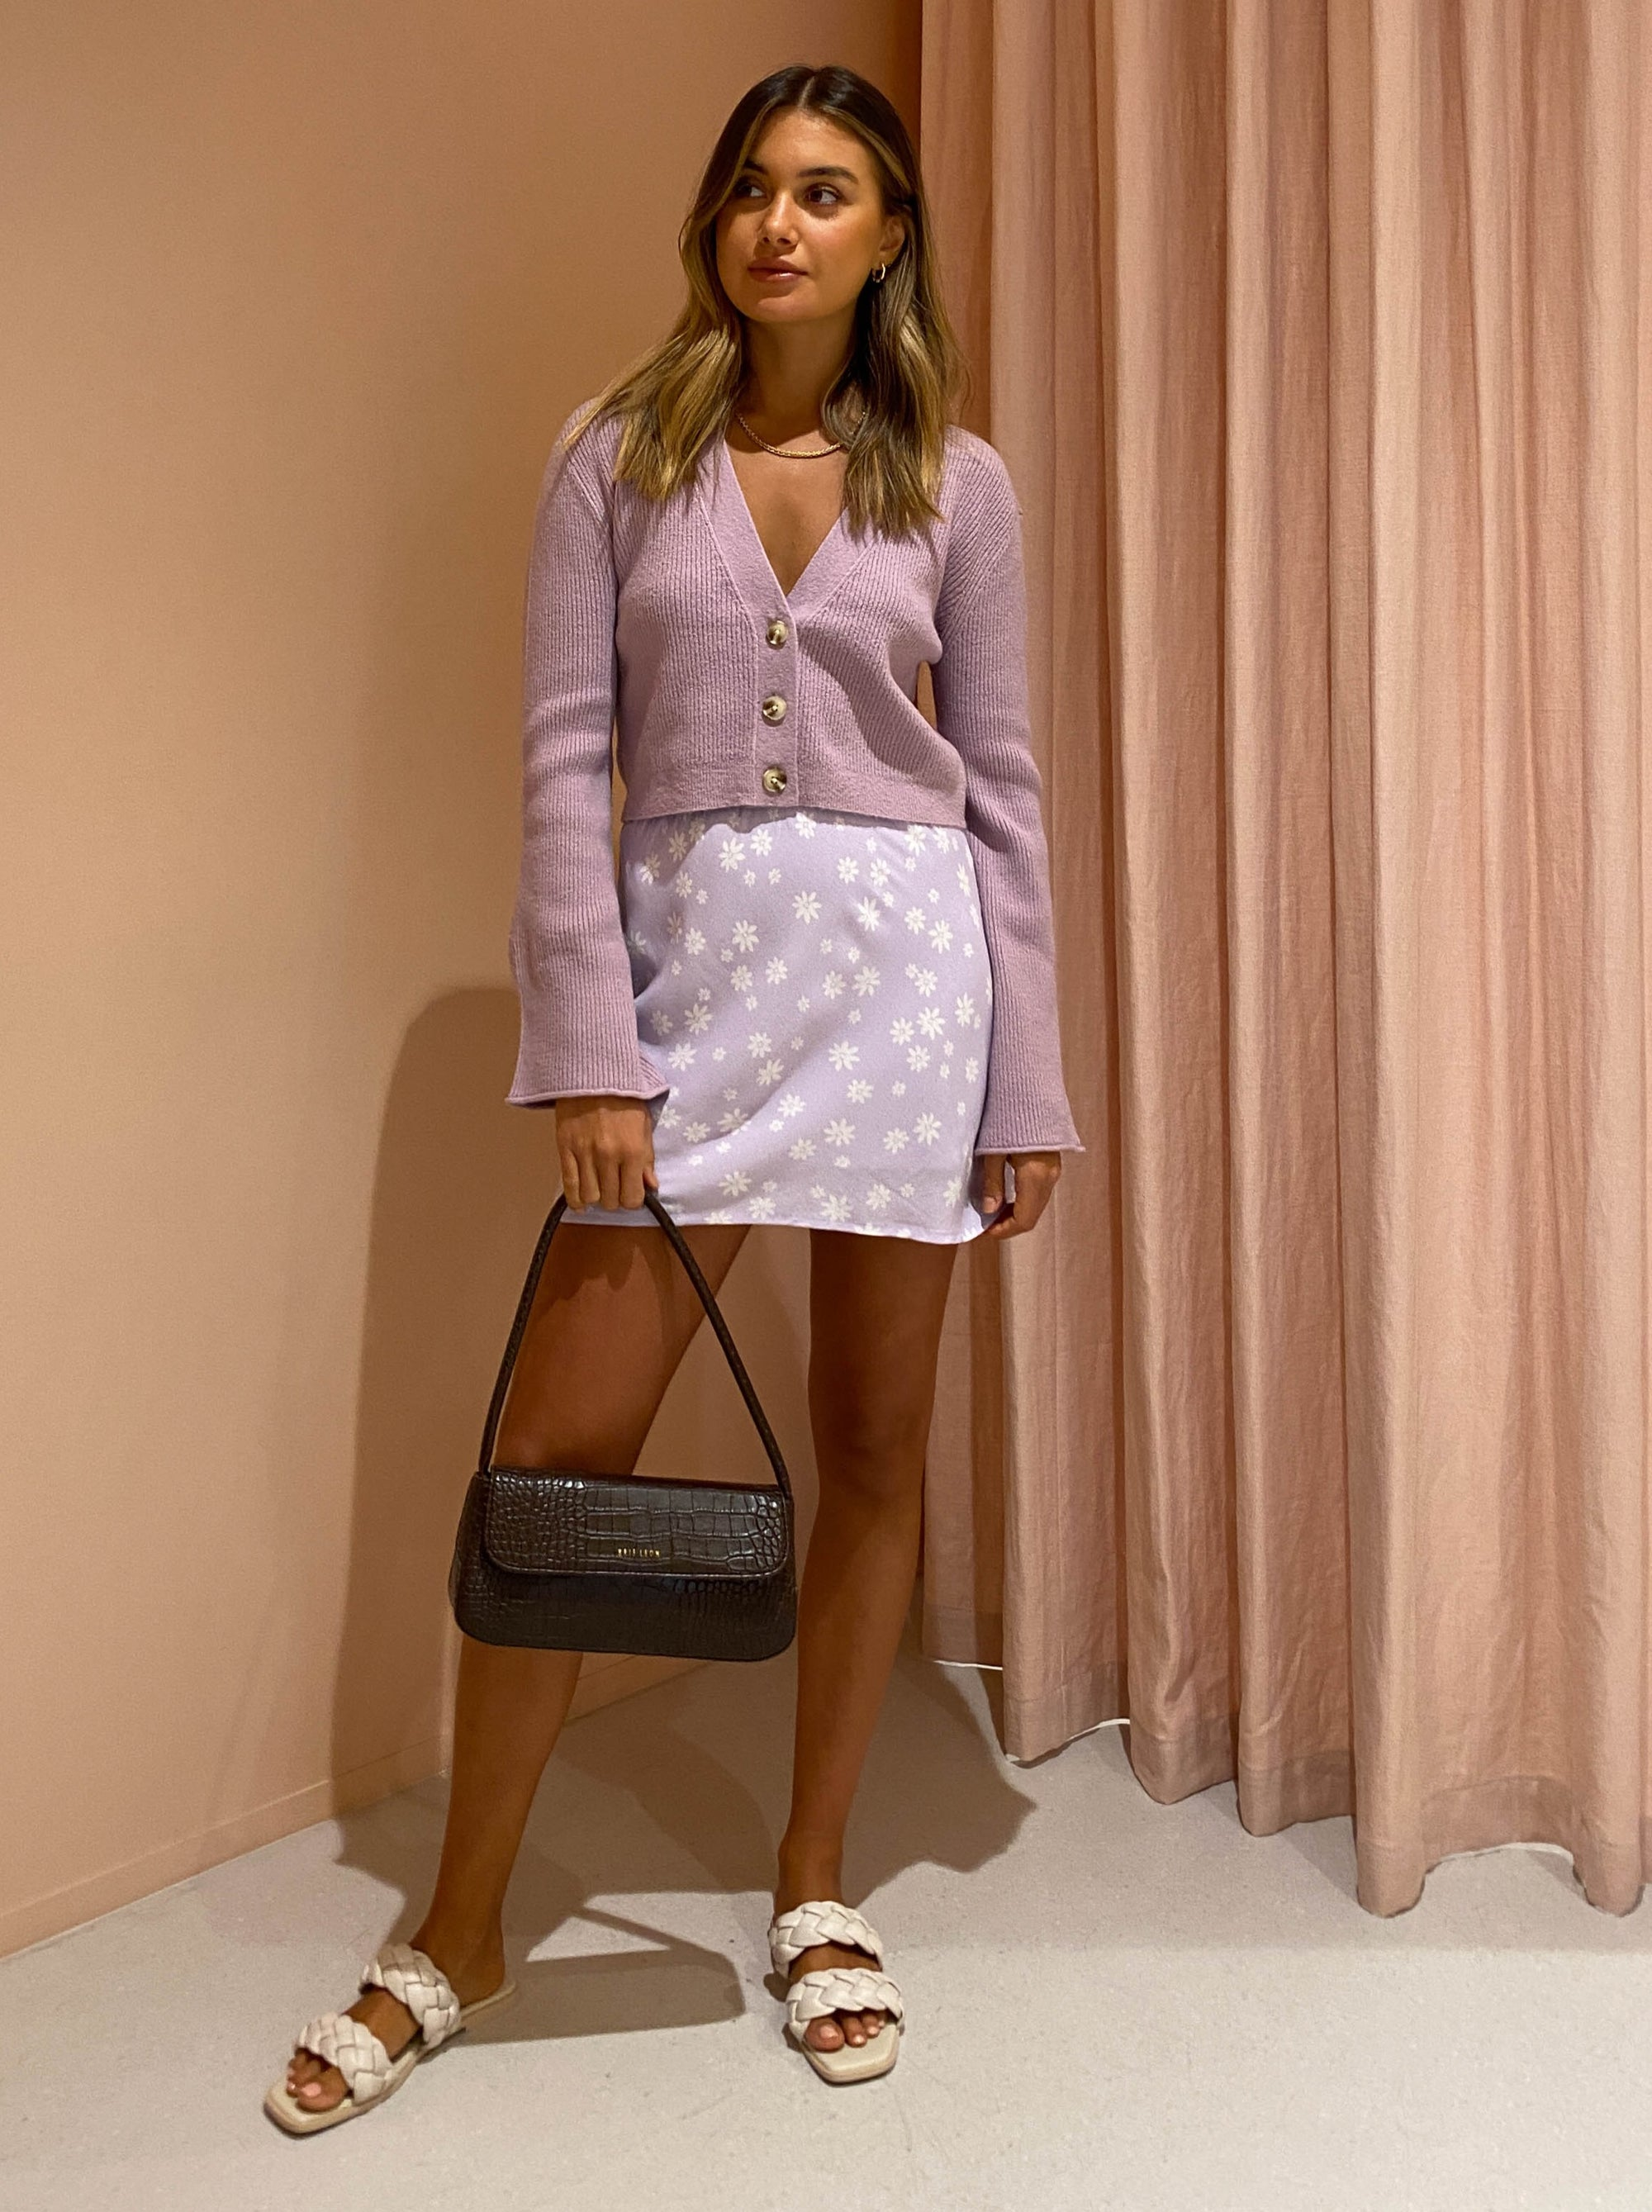 Ownley Harper Skirt in Lilac Daisy